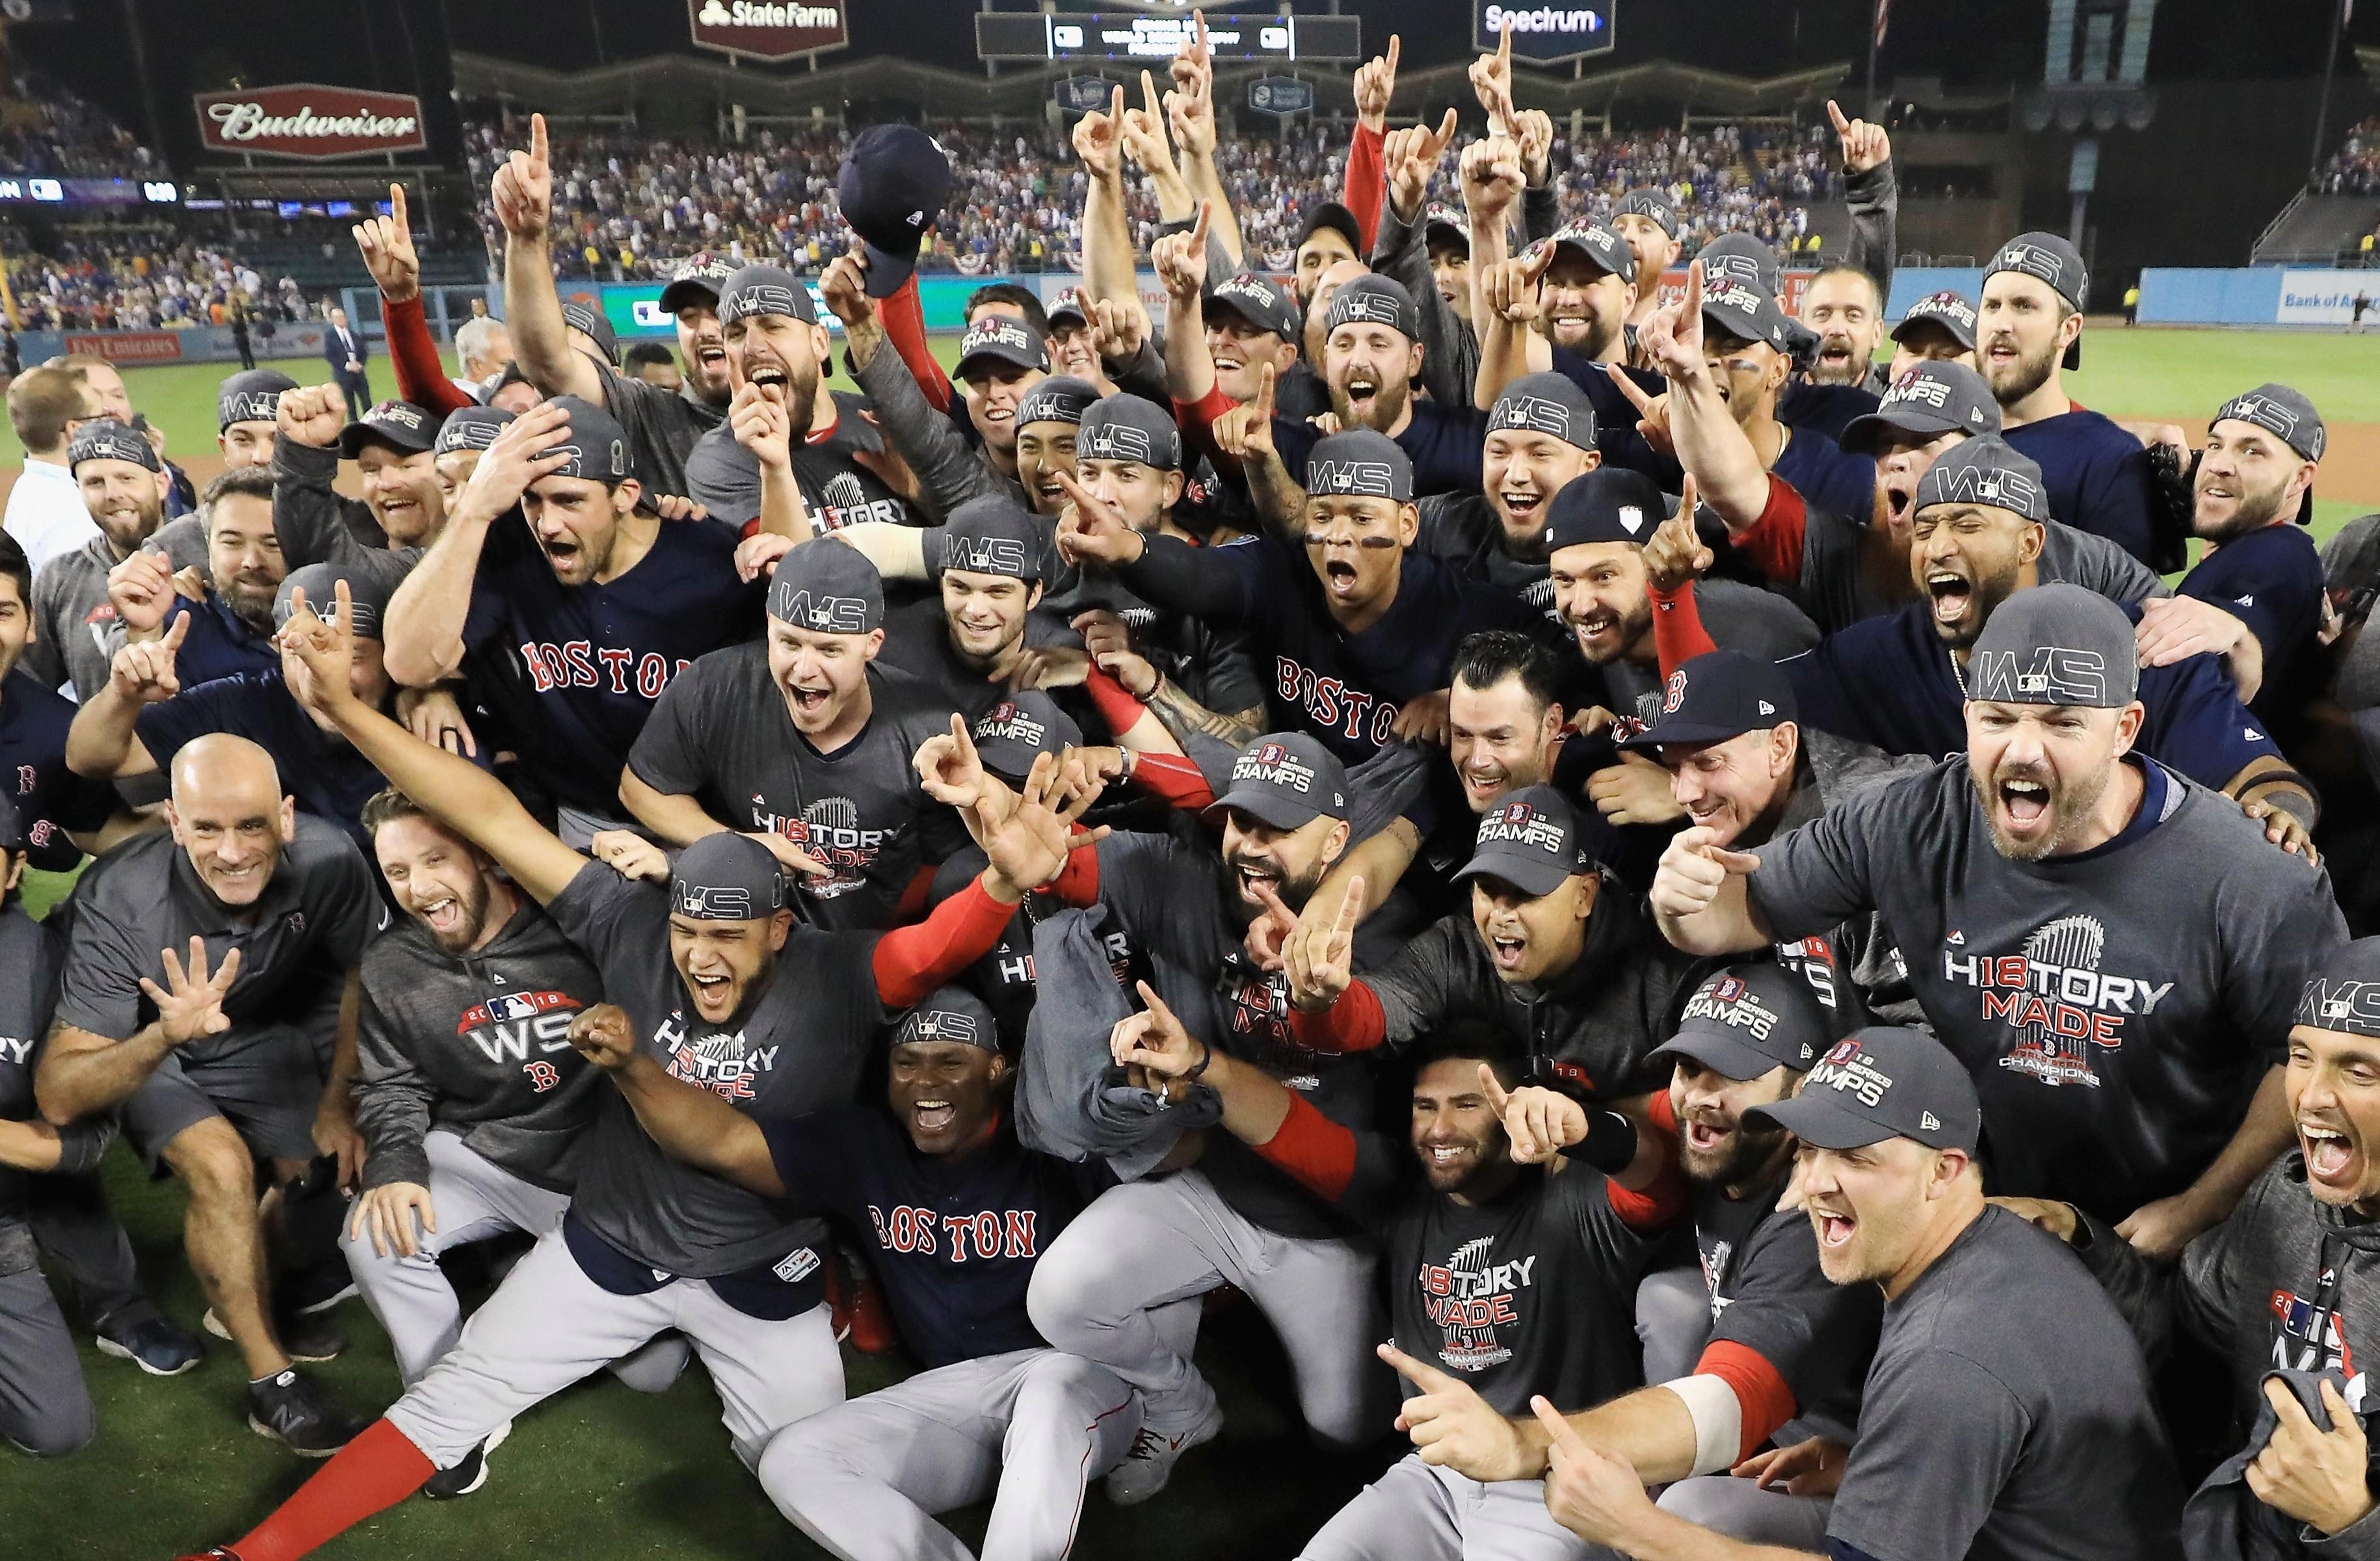 There were scenes of jubilation this evening after the Boston Red Sox clinched the World Series